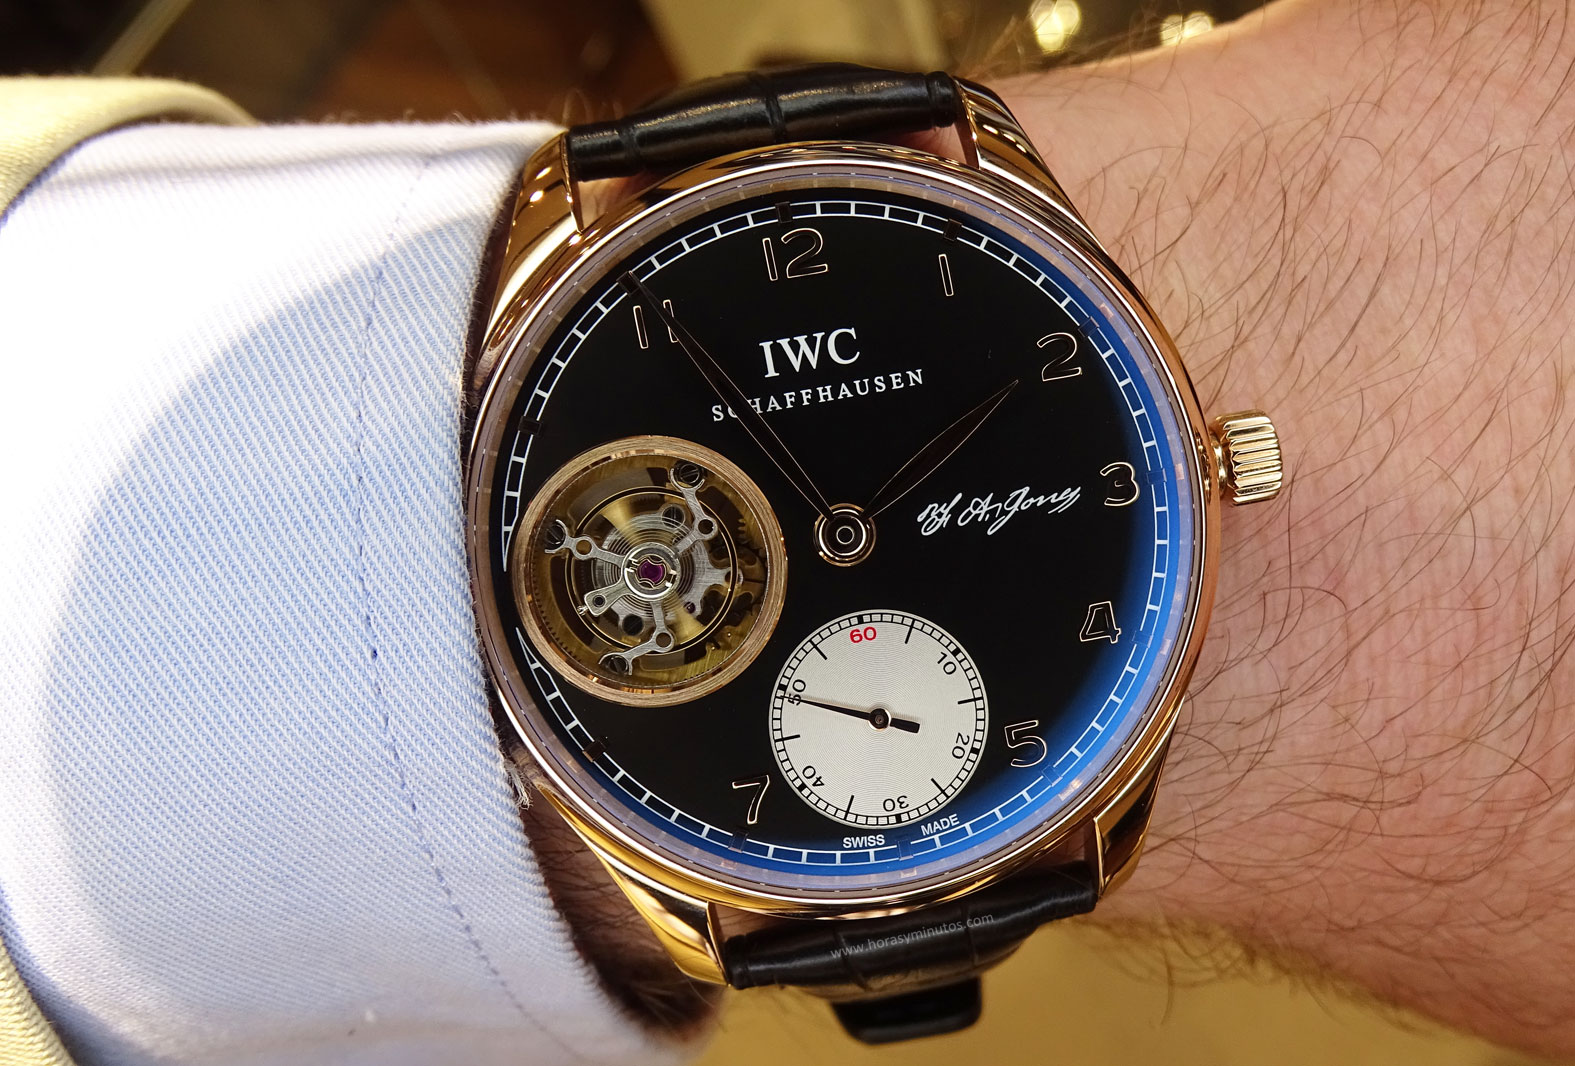 IWC Portugues Tourbillon Manual Jones en la muñeca 1